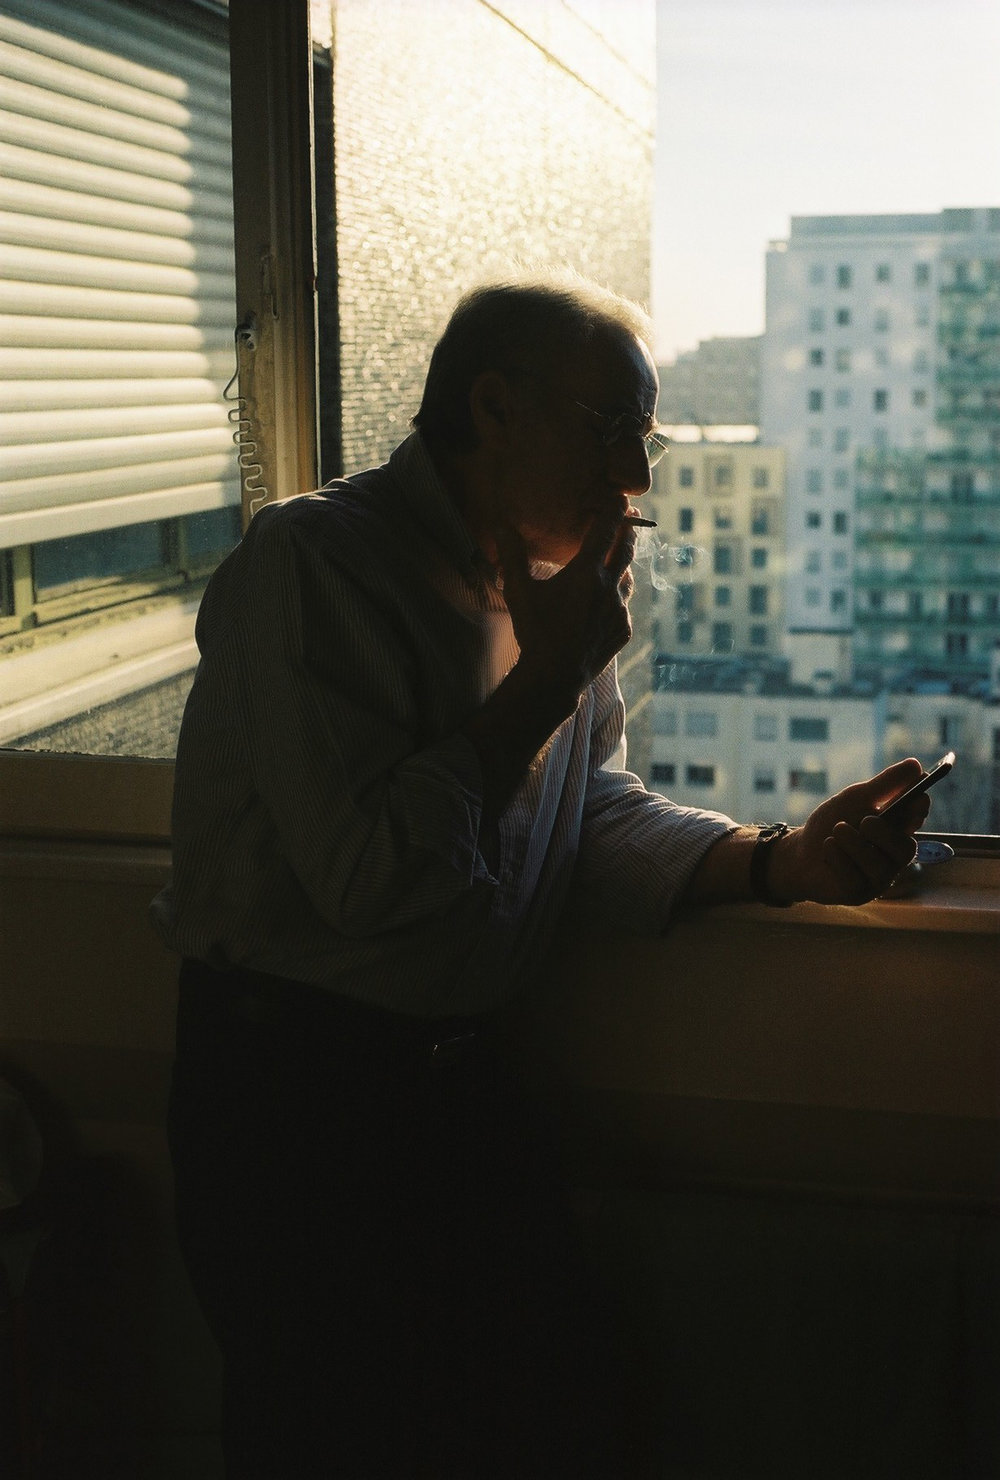 André at the kitchen window, Courbevoie, 2018